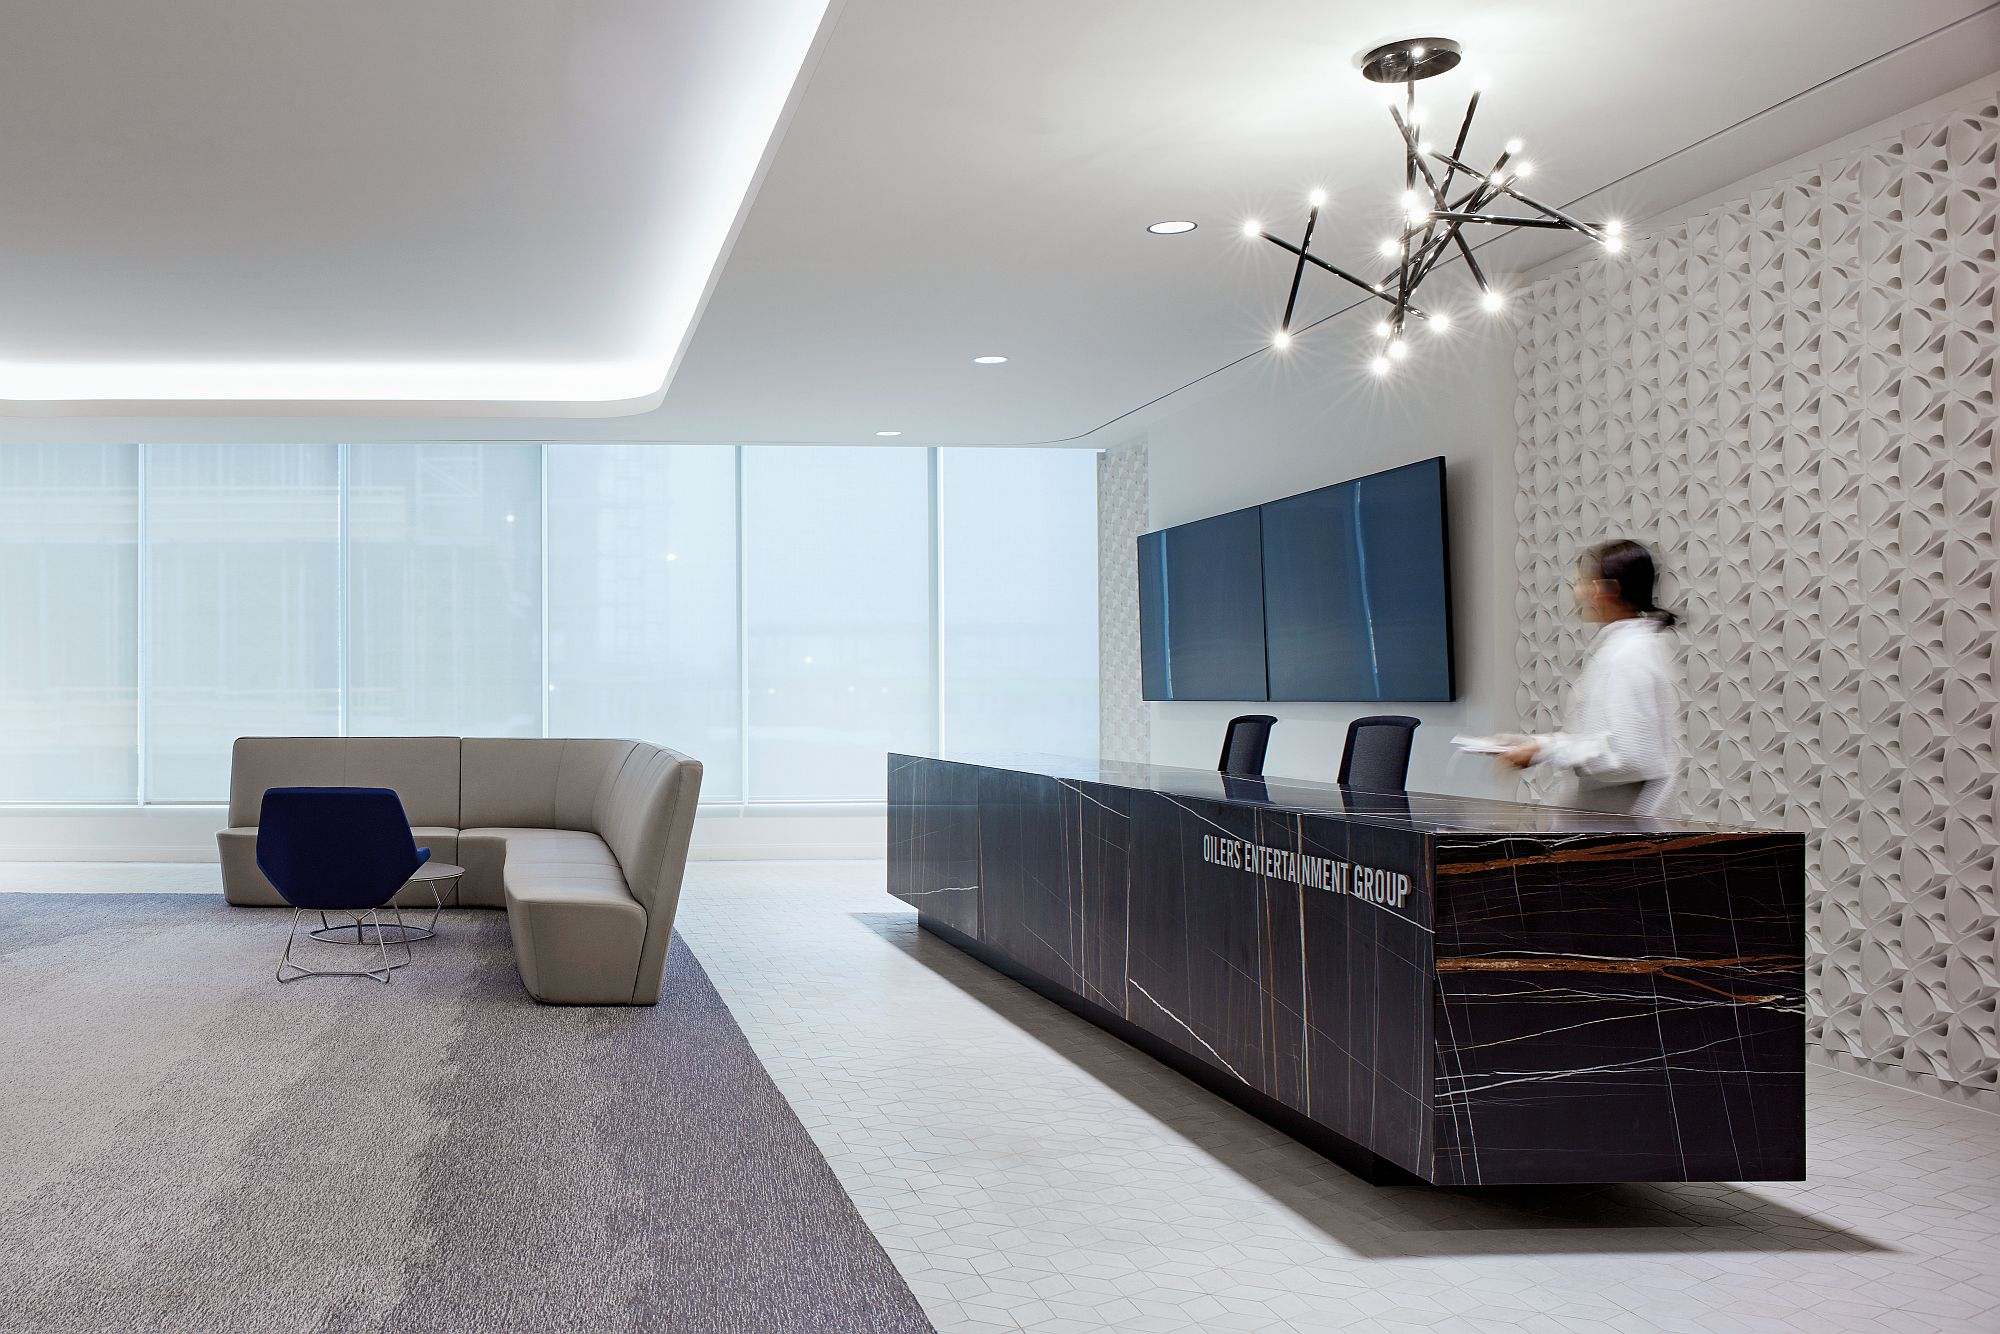 Captivating and sophisticated reception of the OEG office